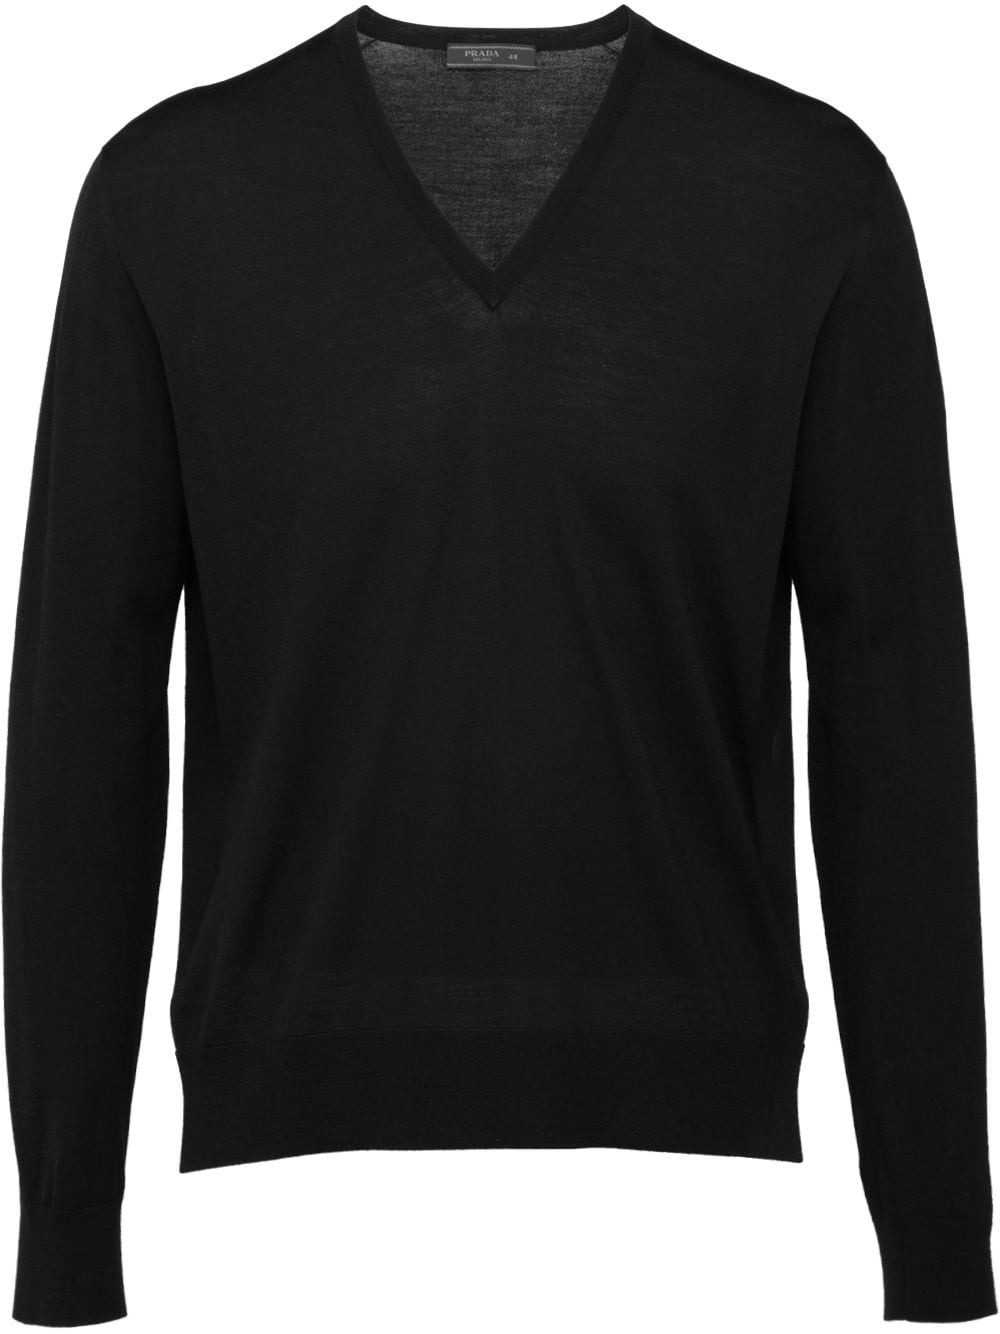 Prada knitted v-neck sweater - Black von Prada